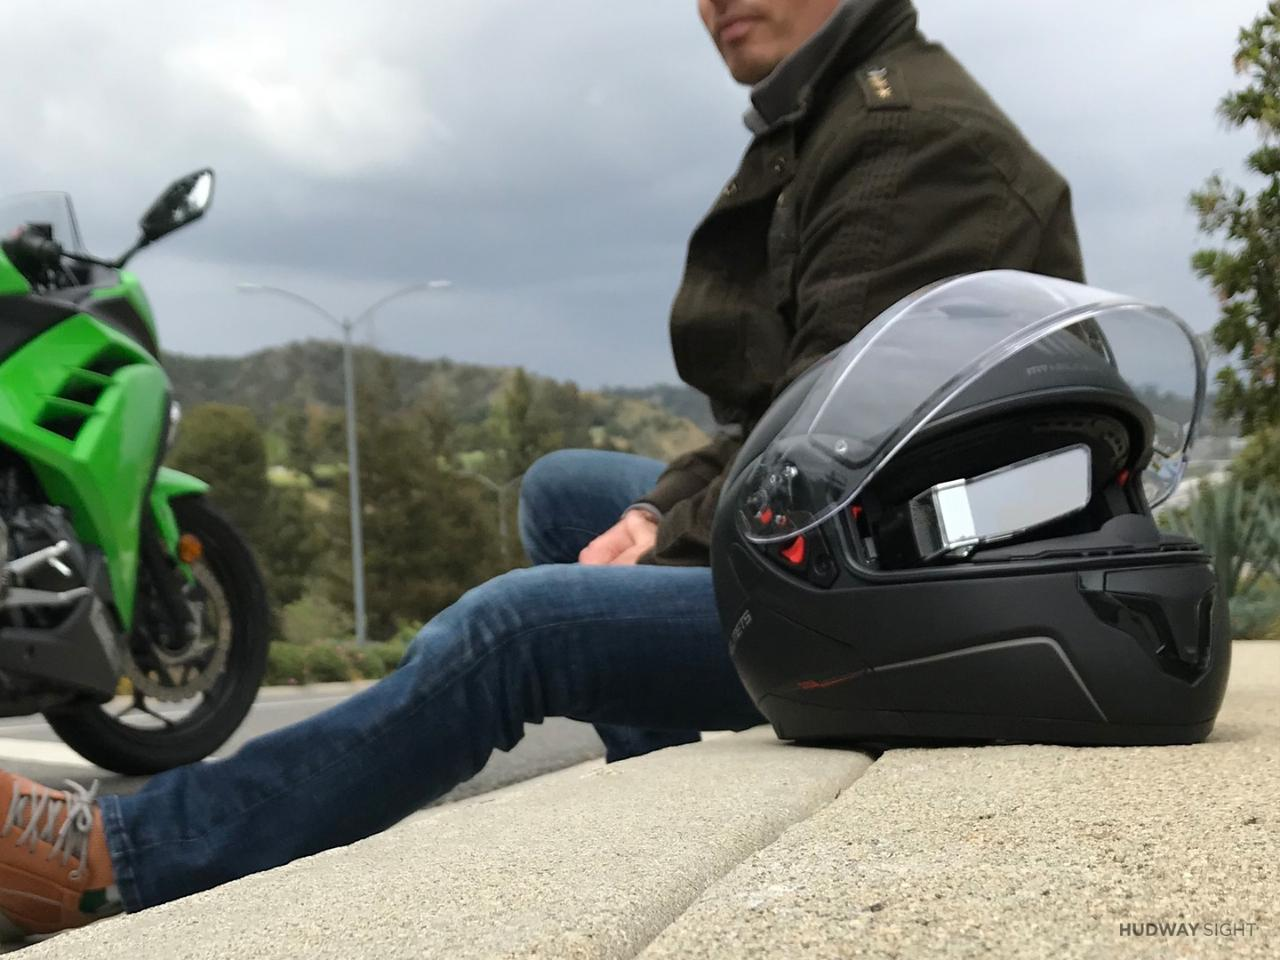 Hudway Sight consists of a mounting bracket that can be attached to an existing motorcycle, bicycle or auto racing helmet, along with a mini LED projector/tempered-glass lens unit that magnetically snaps onto that bracket, and a control unit that is mounted on the back of the helmet